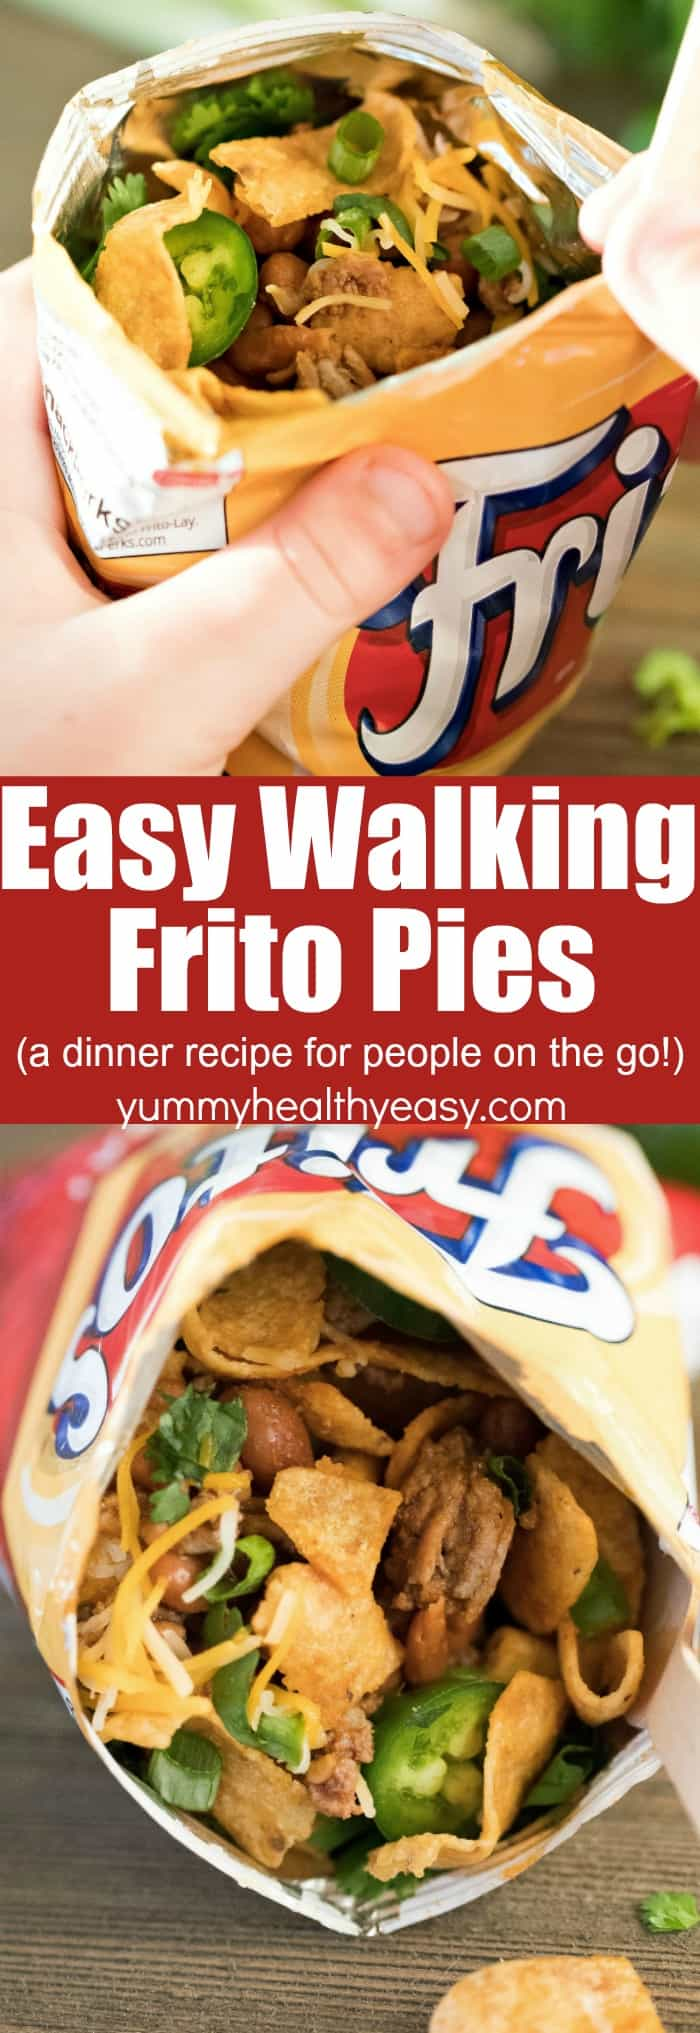 The classic Frito Pie gets a fun update with this Easy Walking Frito Pie idea! In a nutshell, it's a delicious Frito Chili Pie that's portable. Ground beef and Ranch style beans get heated up together and poured right into a Frito snack size bag. Add all your favorite toppings and off you go! Perfect for the family on-the-go.